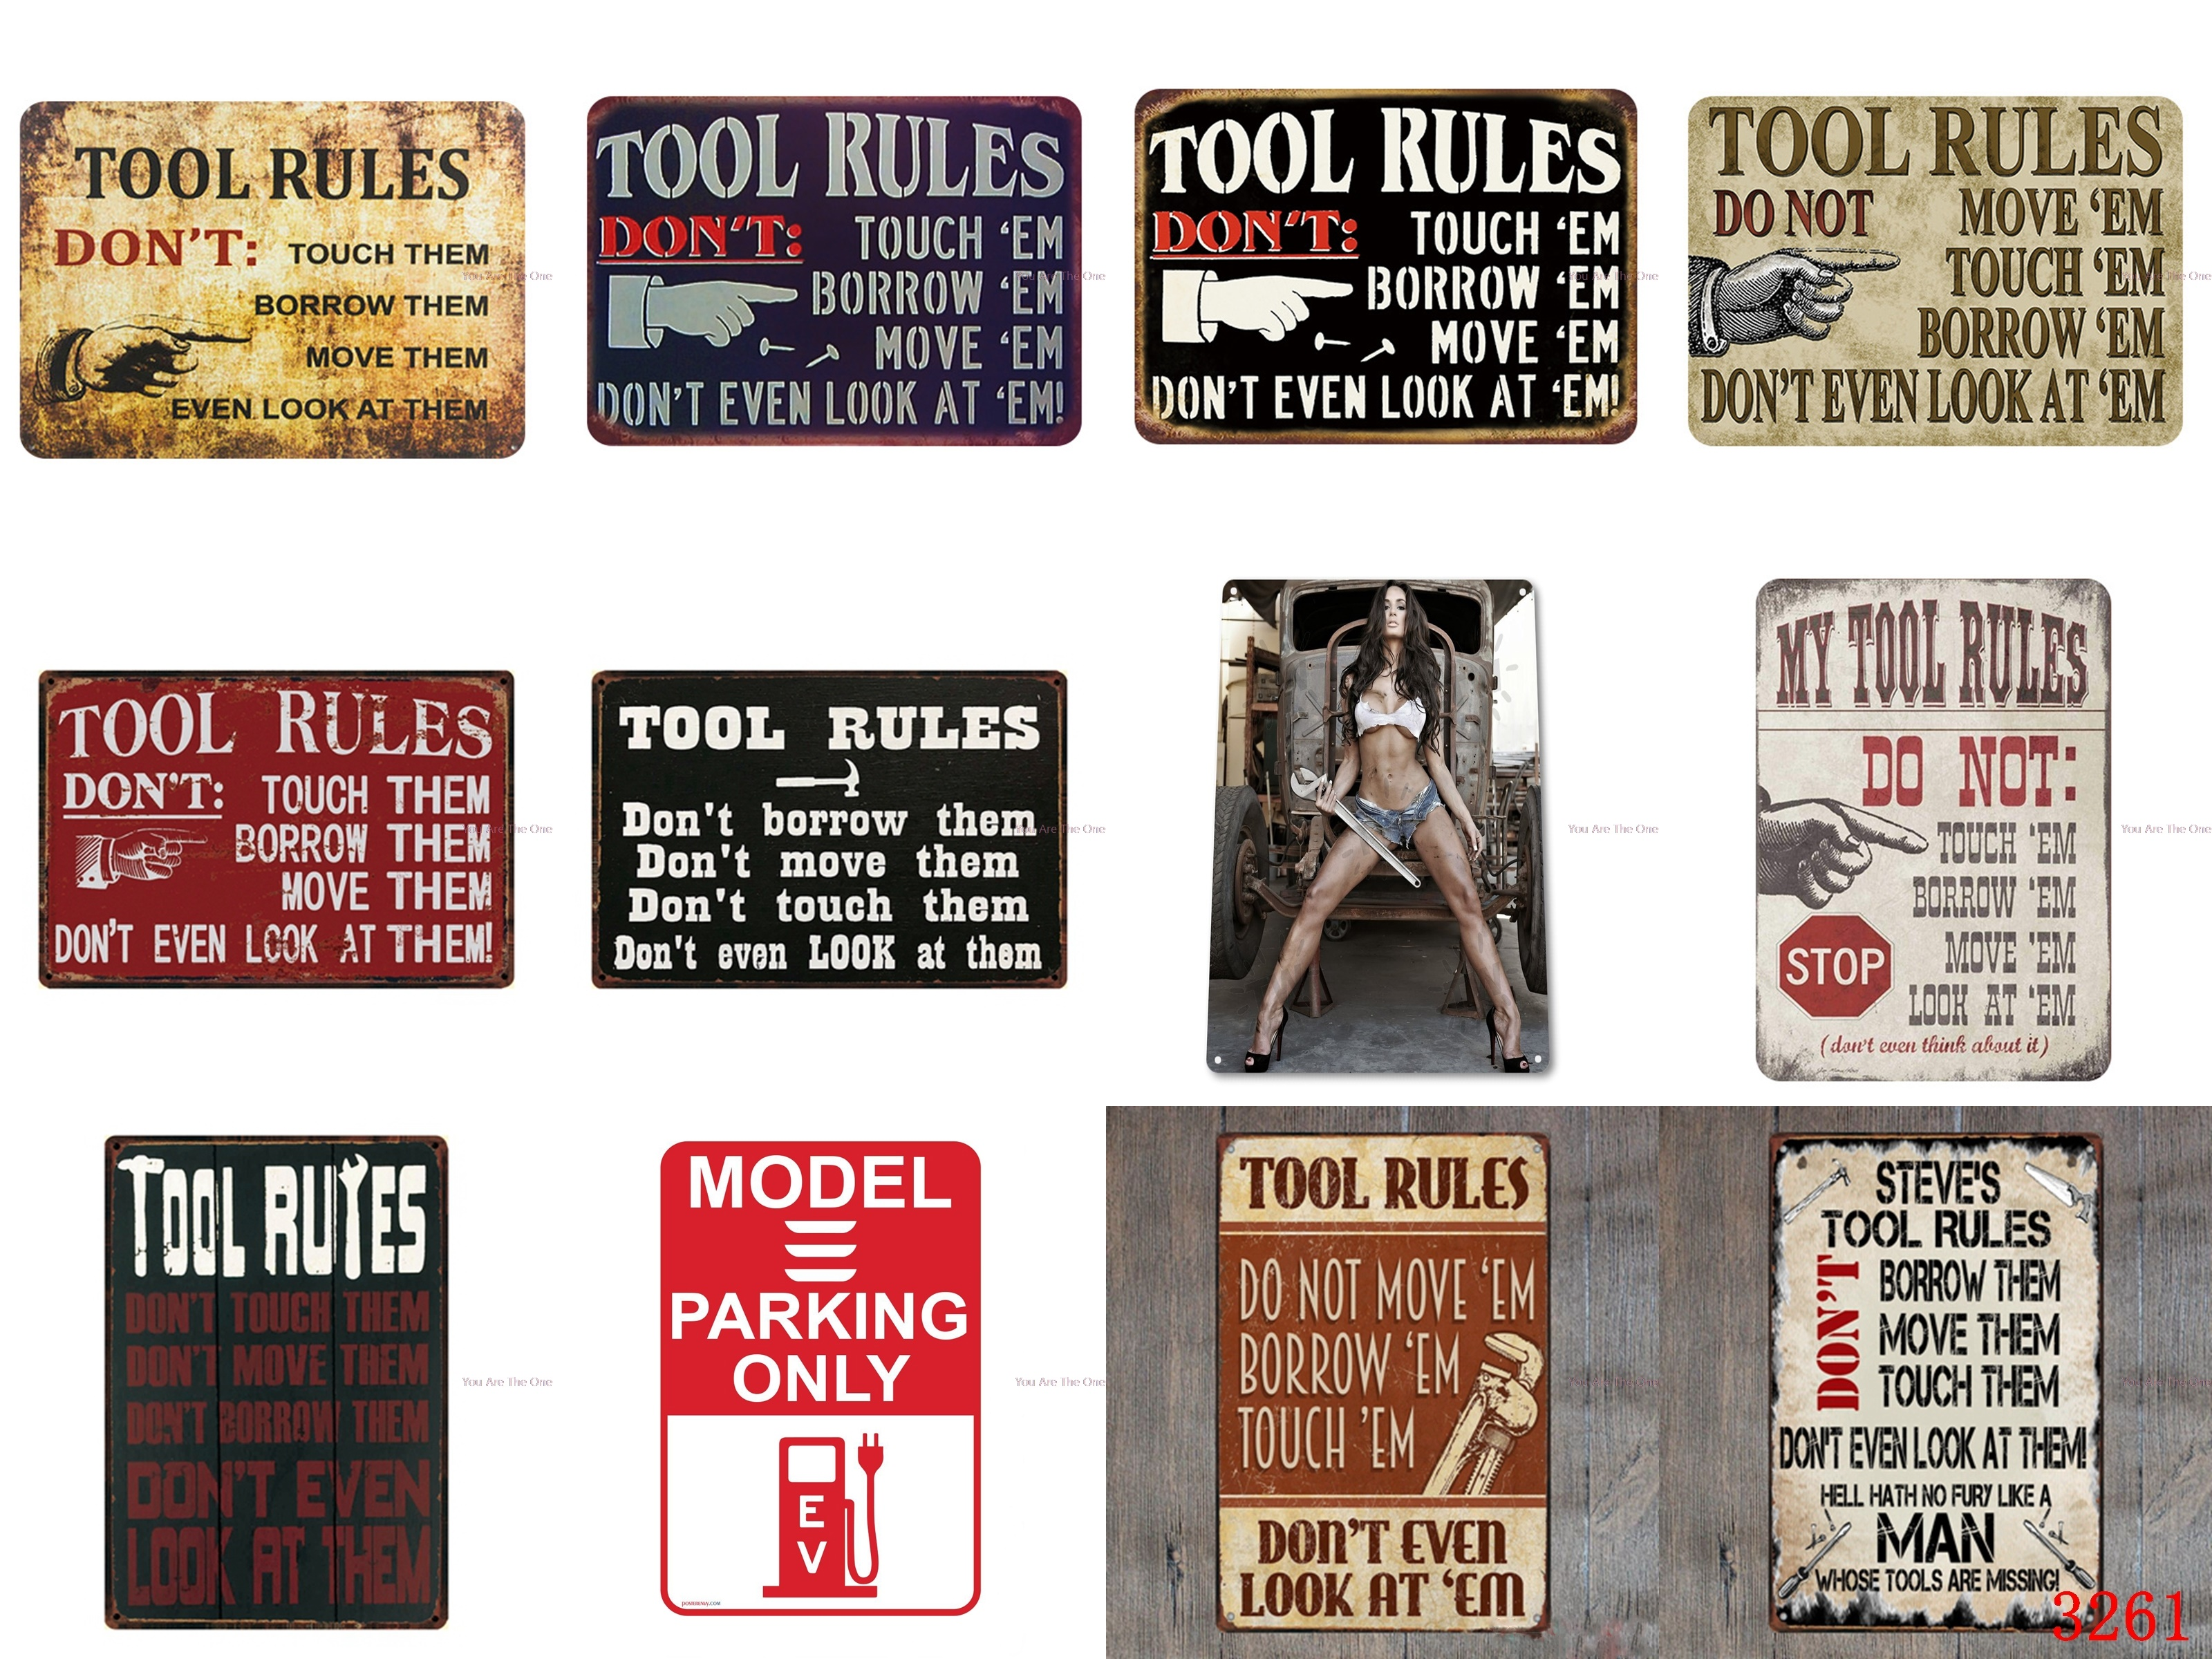 Shabby Metal Tin Signs Tool rules: Do not touch them,borrow them,move them and look at them Vintage Garage Plaque Iron Painting